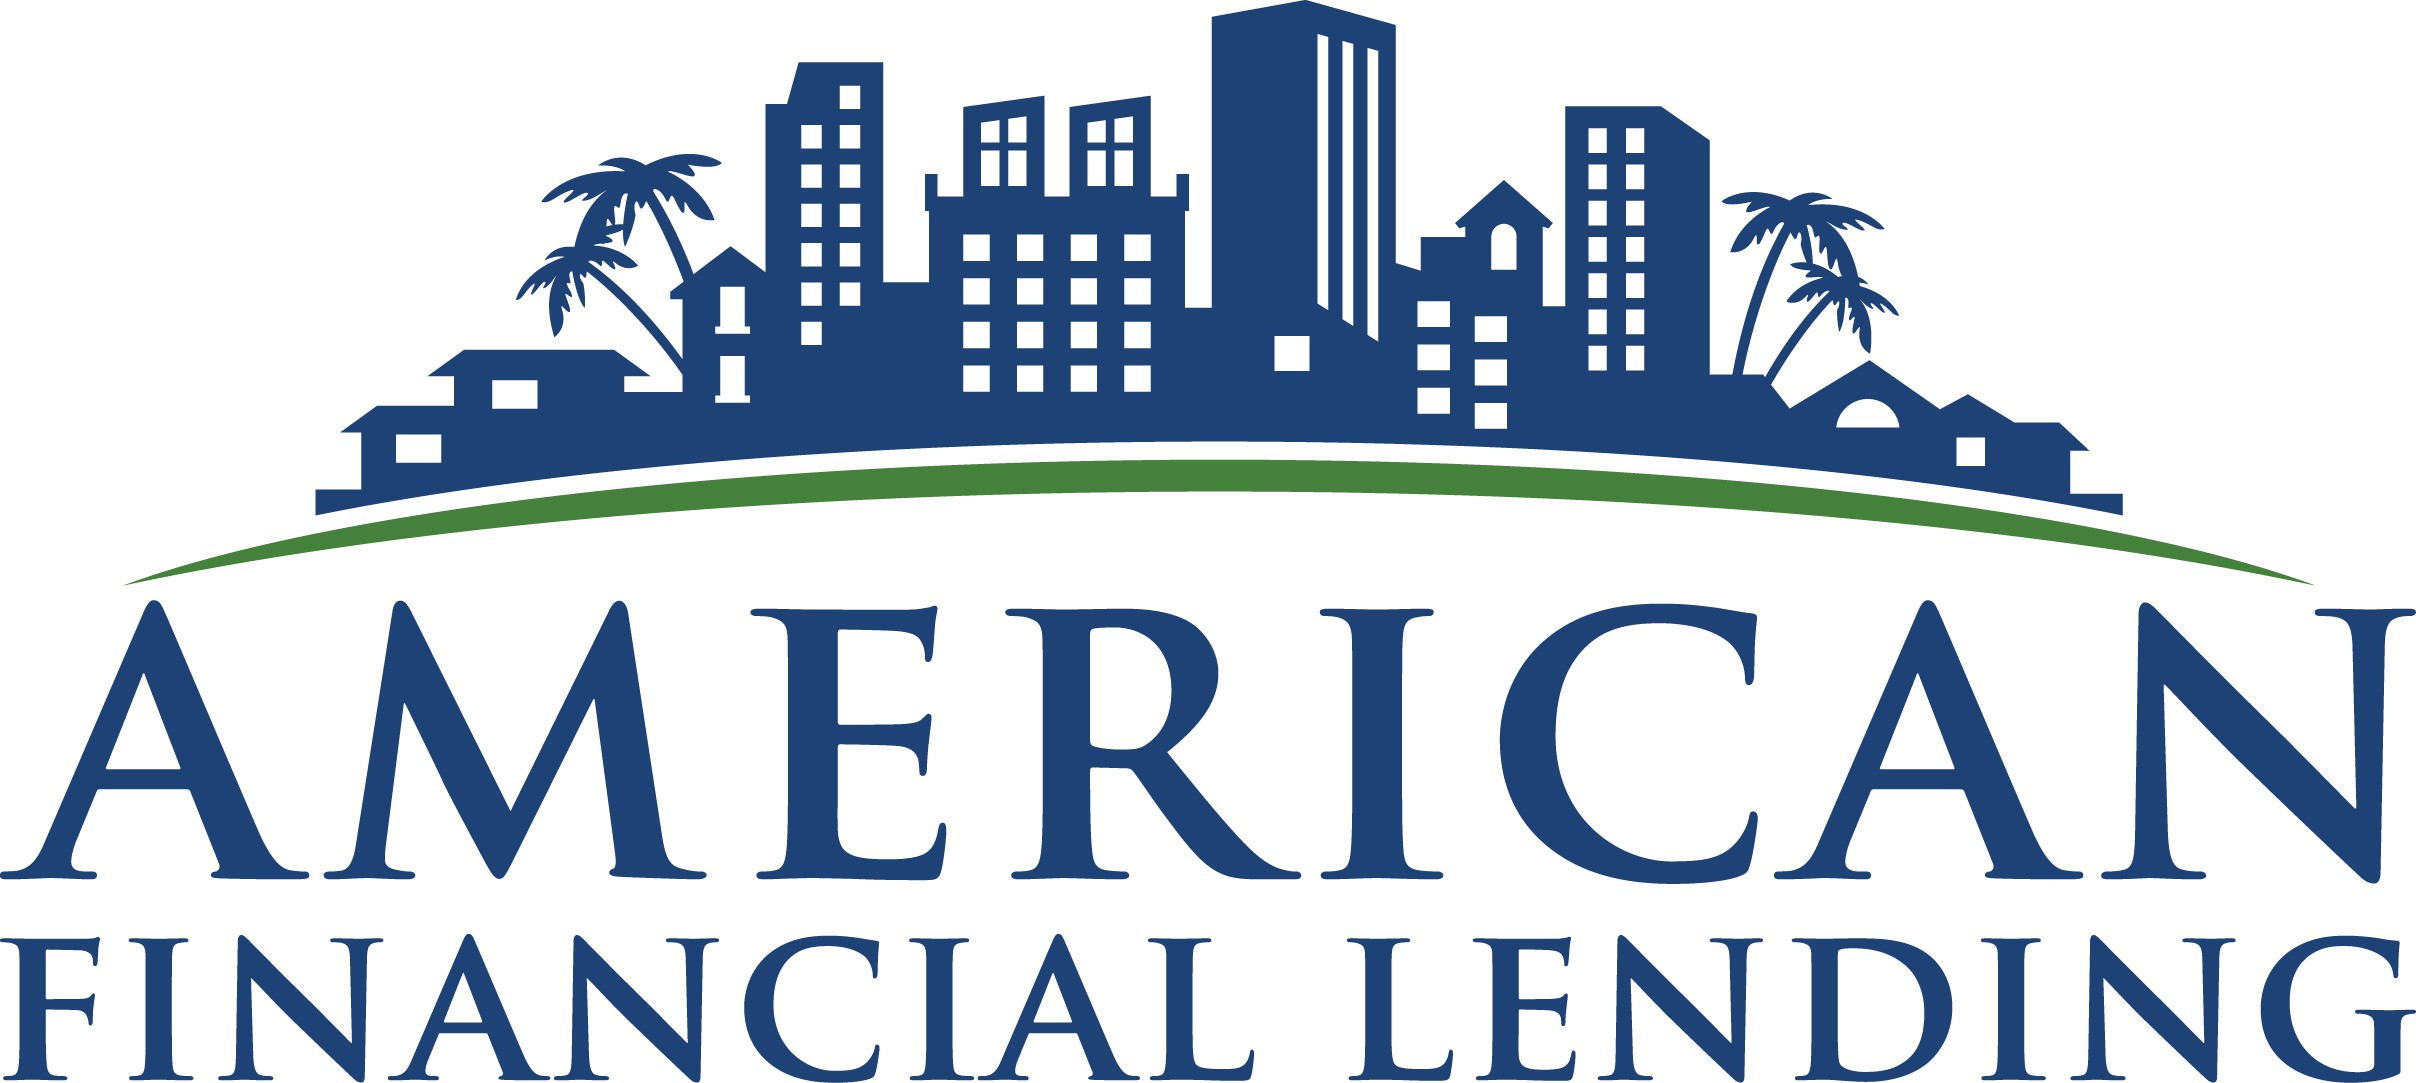 Nationwide commercial lender needs a powerful logo and busines card design